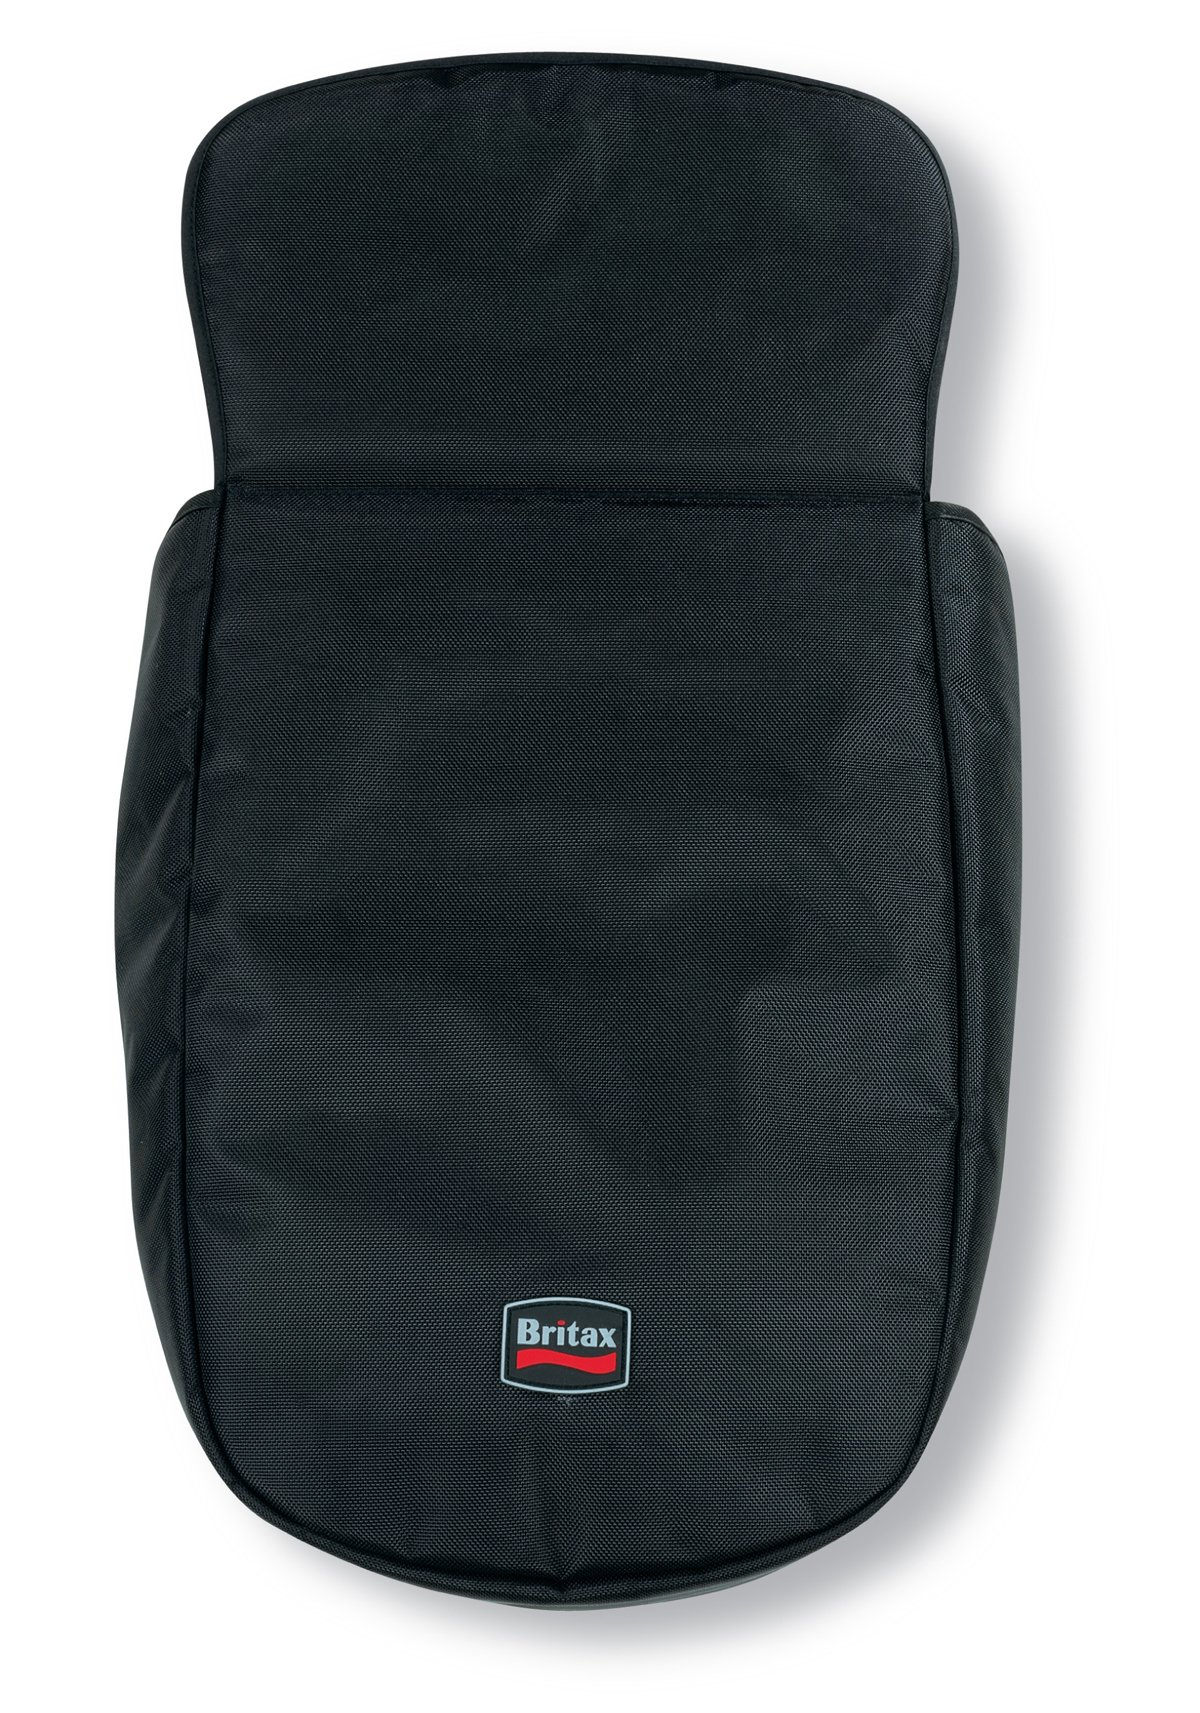 Britax B-Ready and B-Scene Boot Cover, Black by BRITAX (Image #1)